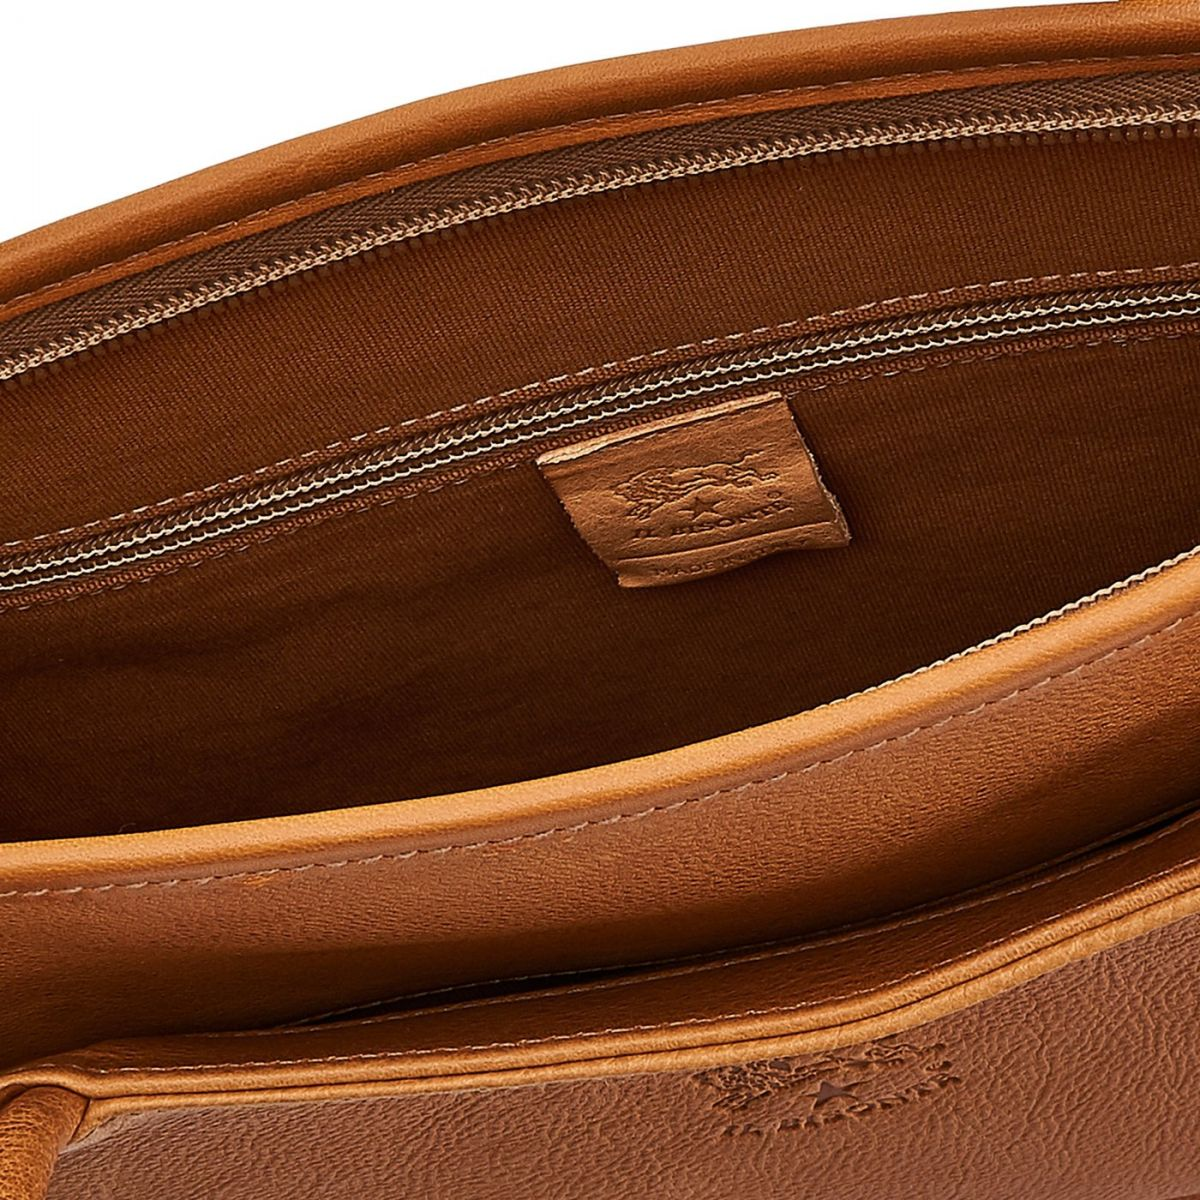 Briefcase in Vintage Cowhide Leather BBC017 color Natural | Details